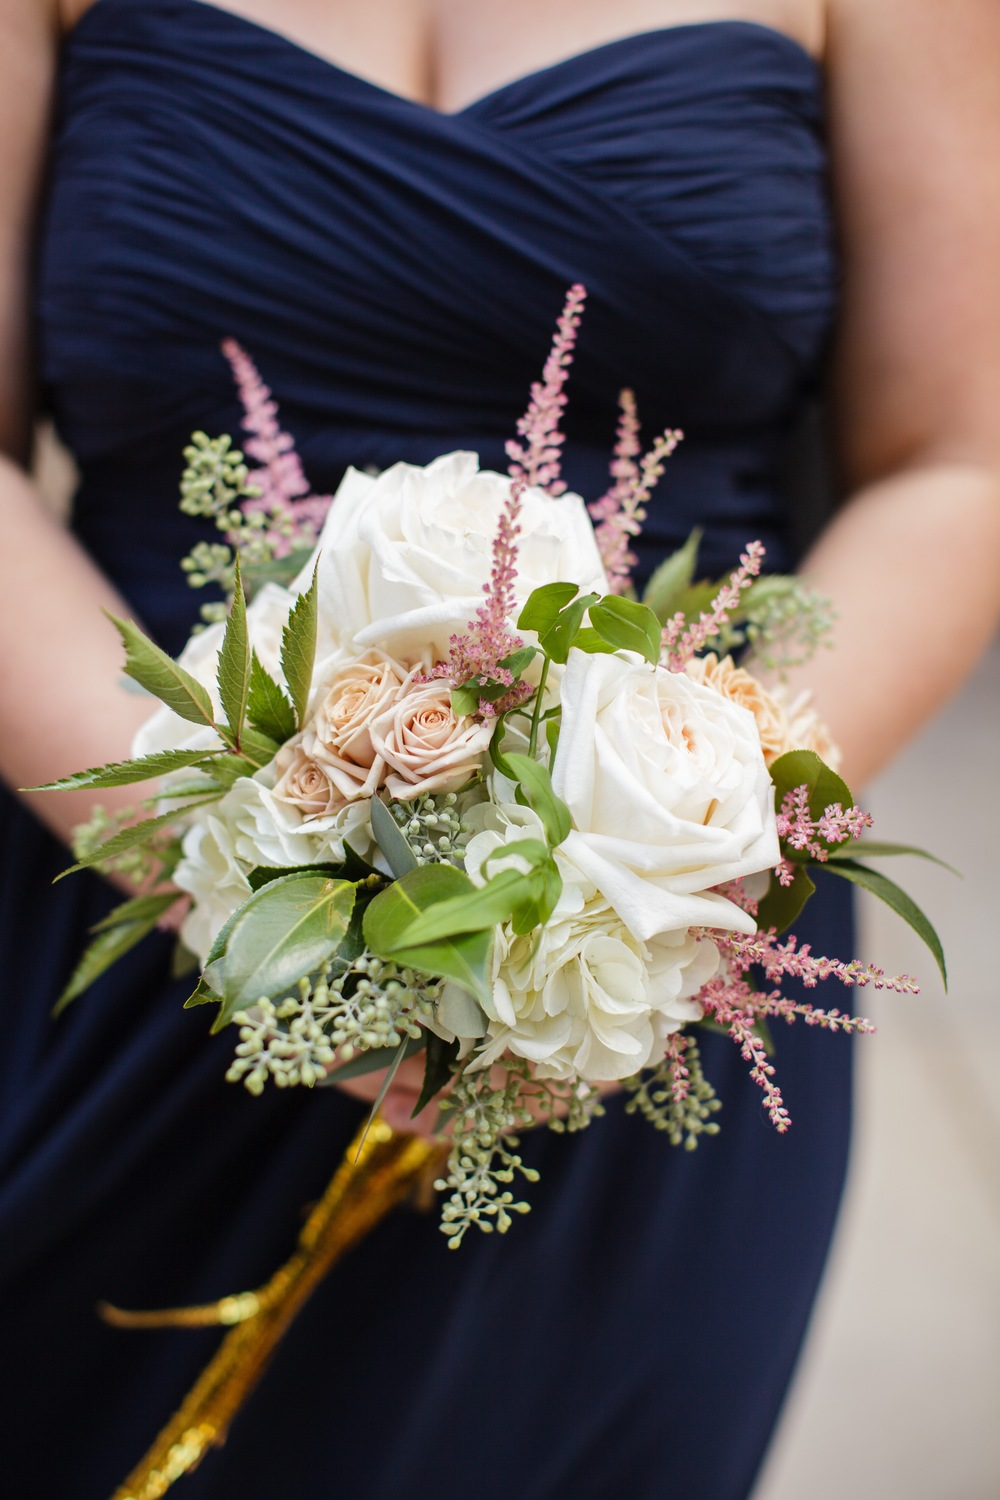 Bridesmaid bouquet by Fleur Inc, photo by Sarah Postma Photography